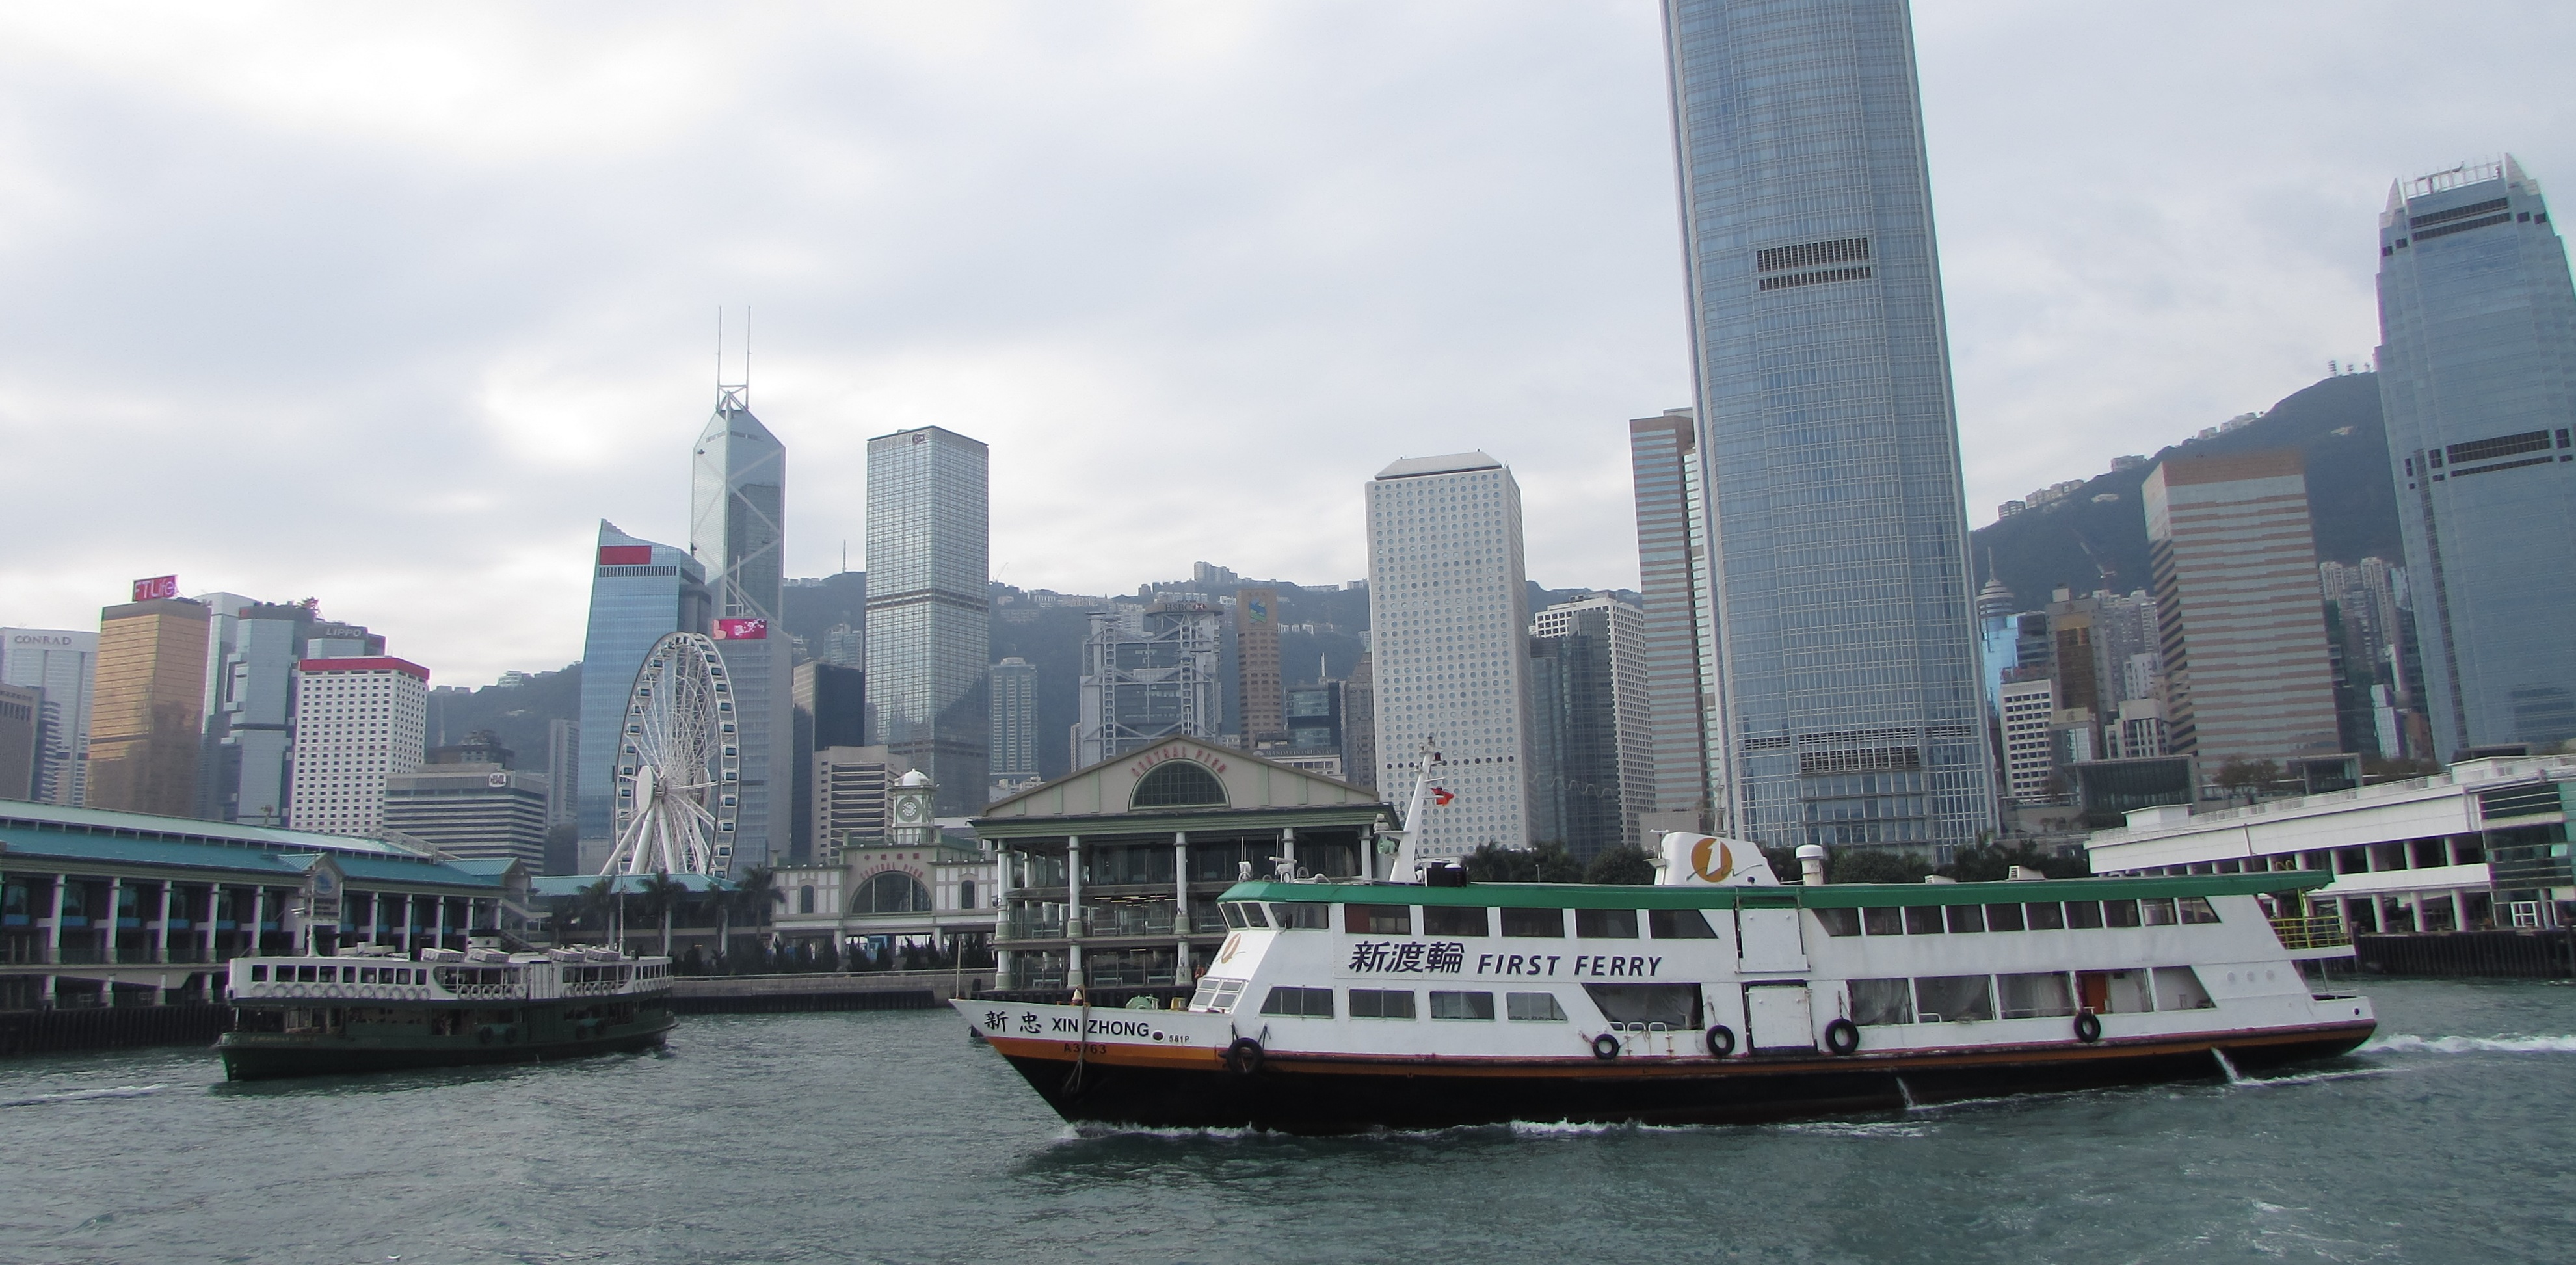 hongkongskylinefromferry